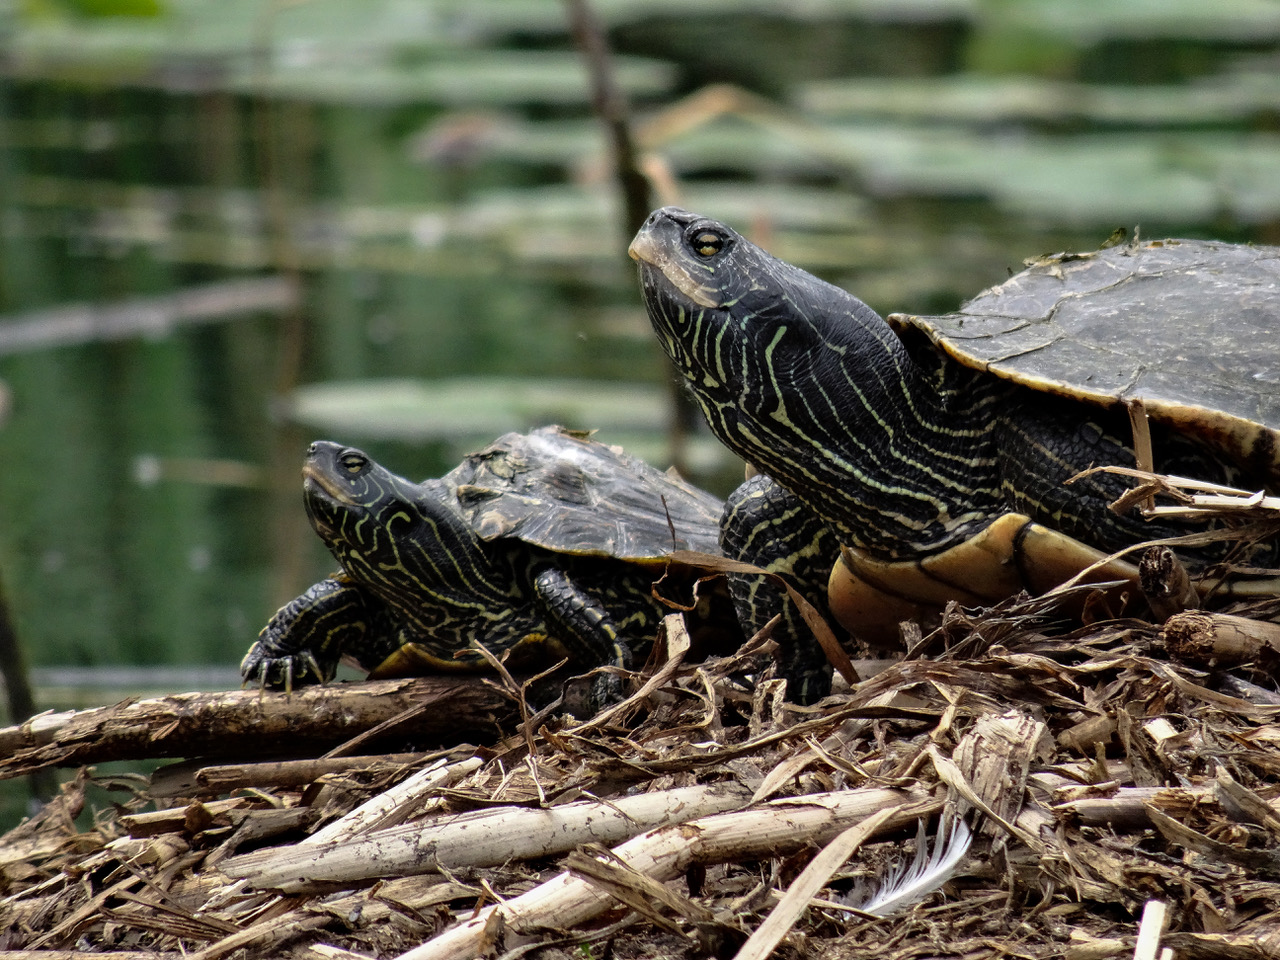 Northern Map Turtles